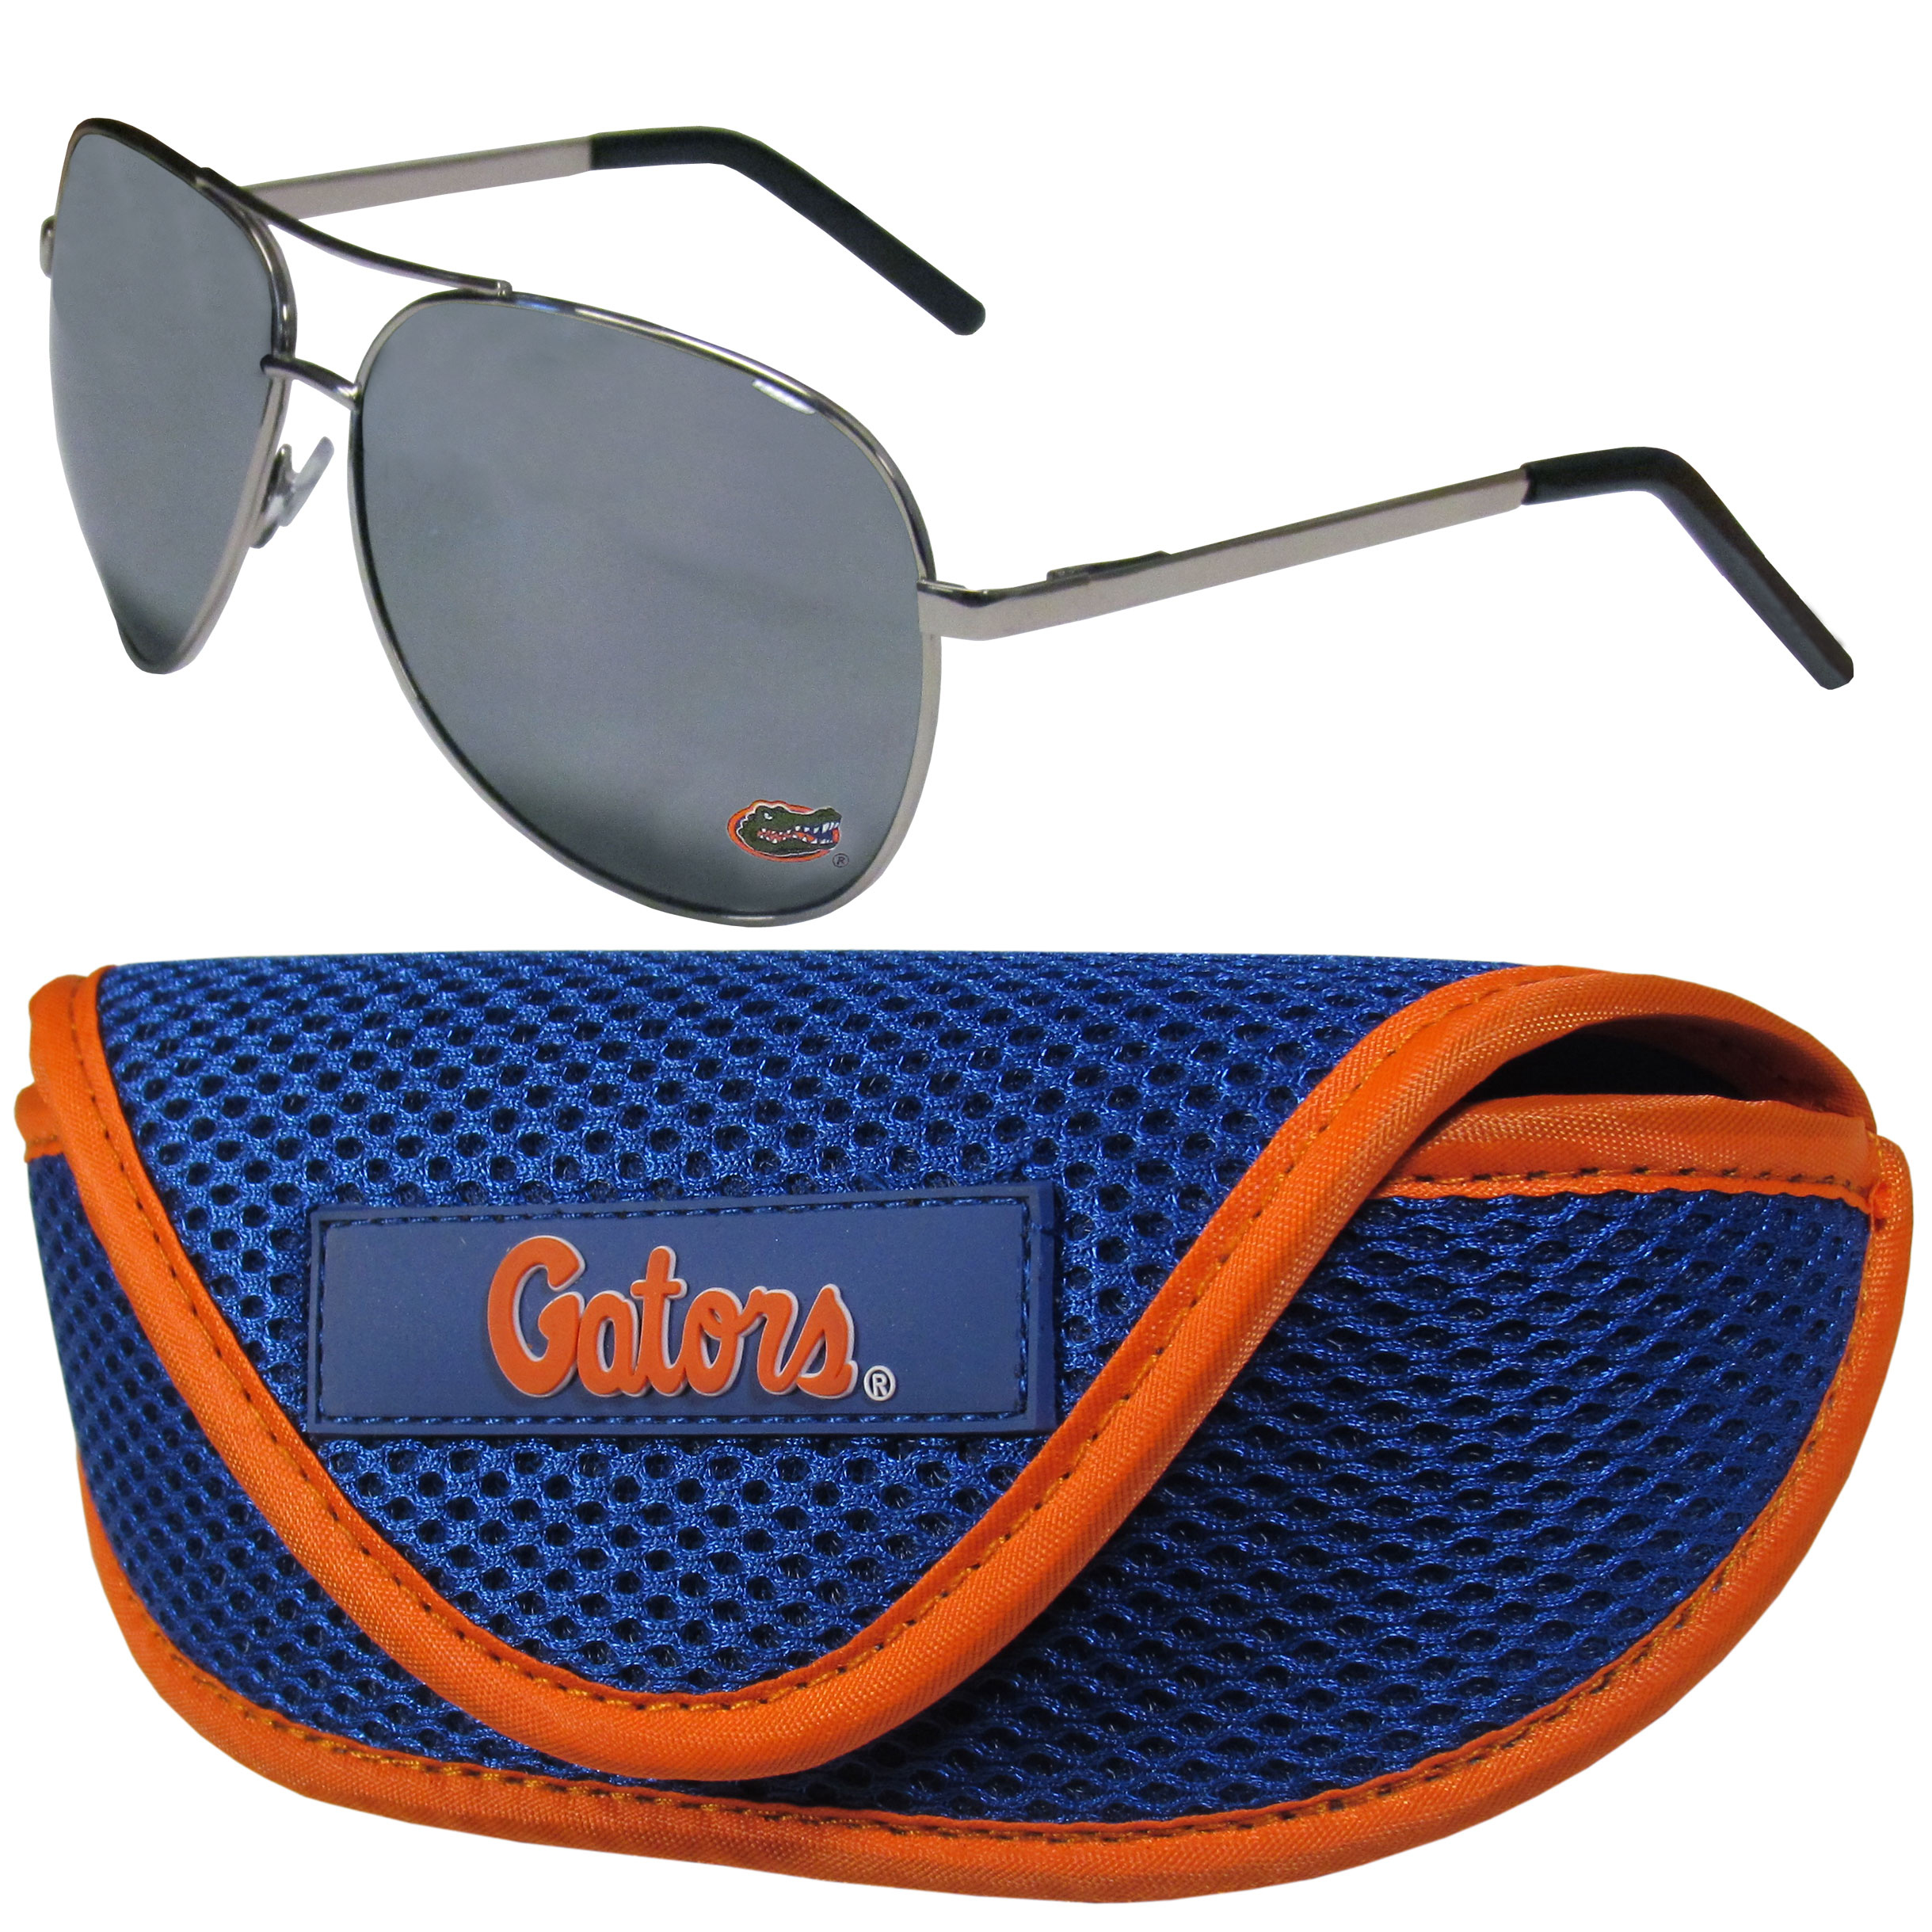 Florida Gators Aviator Sunglasses and Sports Case - Aviator sunglasses are truly an iconic retro fashion statement that never goes out-of-style. Our Florida Gators  aviator sunglasses pair this classic look with your love of the game. The iridium coated lenses reduce glare while driving, boating, golfing and their 100% UVA/UVB rating provides you with the maximum UV protection for all your outdoor activities. A millennial favorite, these affordable designer frames are the perfect eyewear accessory for a sports fan that is looking for high-quality at an affordable price. The durable, flex hinged frames are tough enough for hiking and camping or if you prefer sun bathing by the pool or on the beach these shades will really stand the test of time. The sunglasses come with a sporty case which has a large team logo on the lid that will make even the most die-hard fan proud!